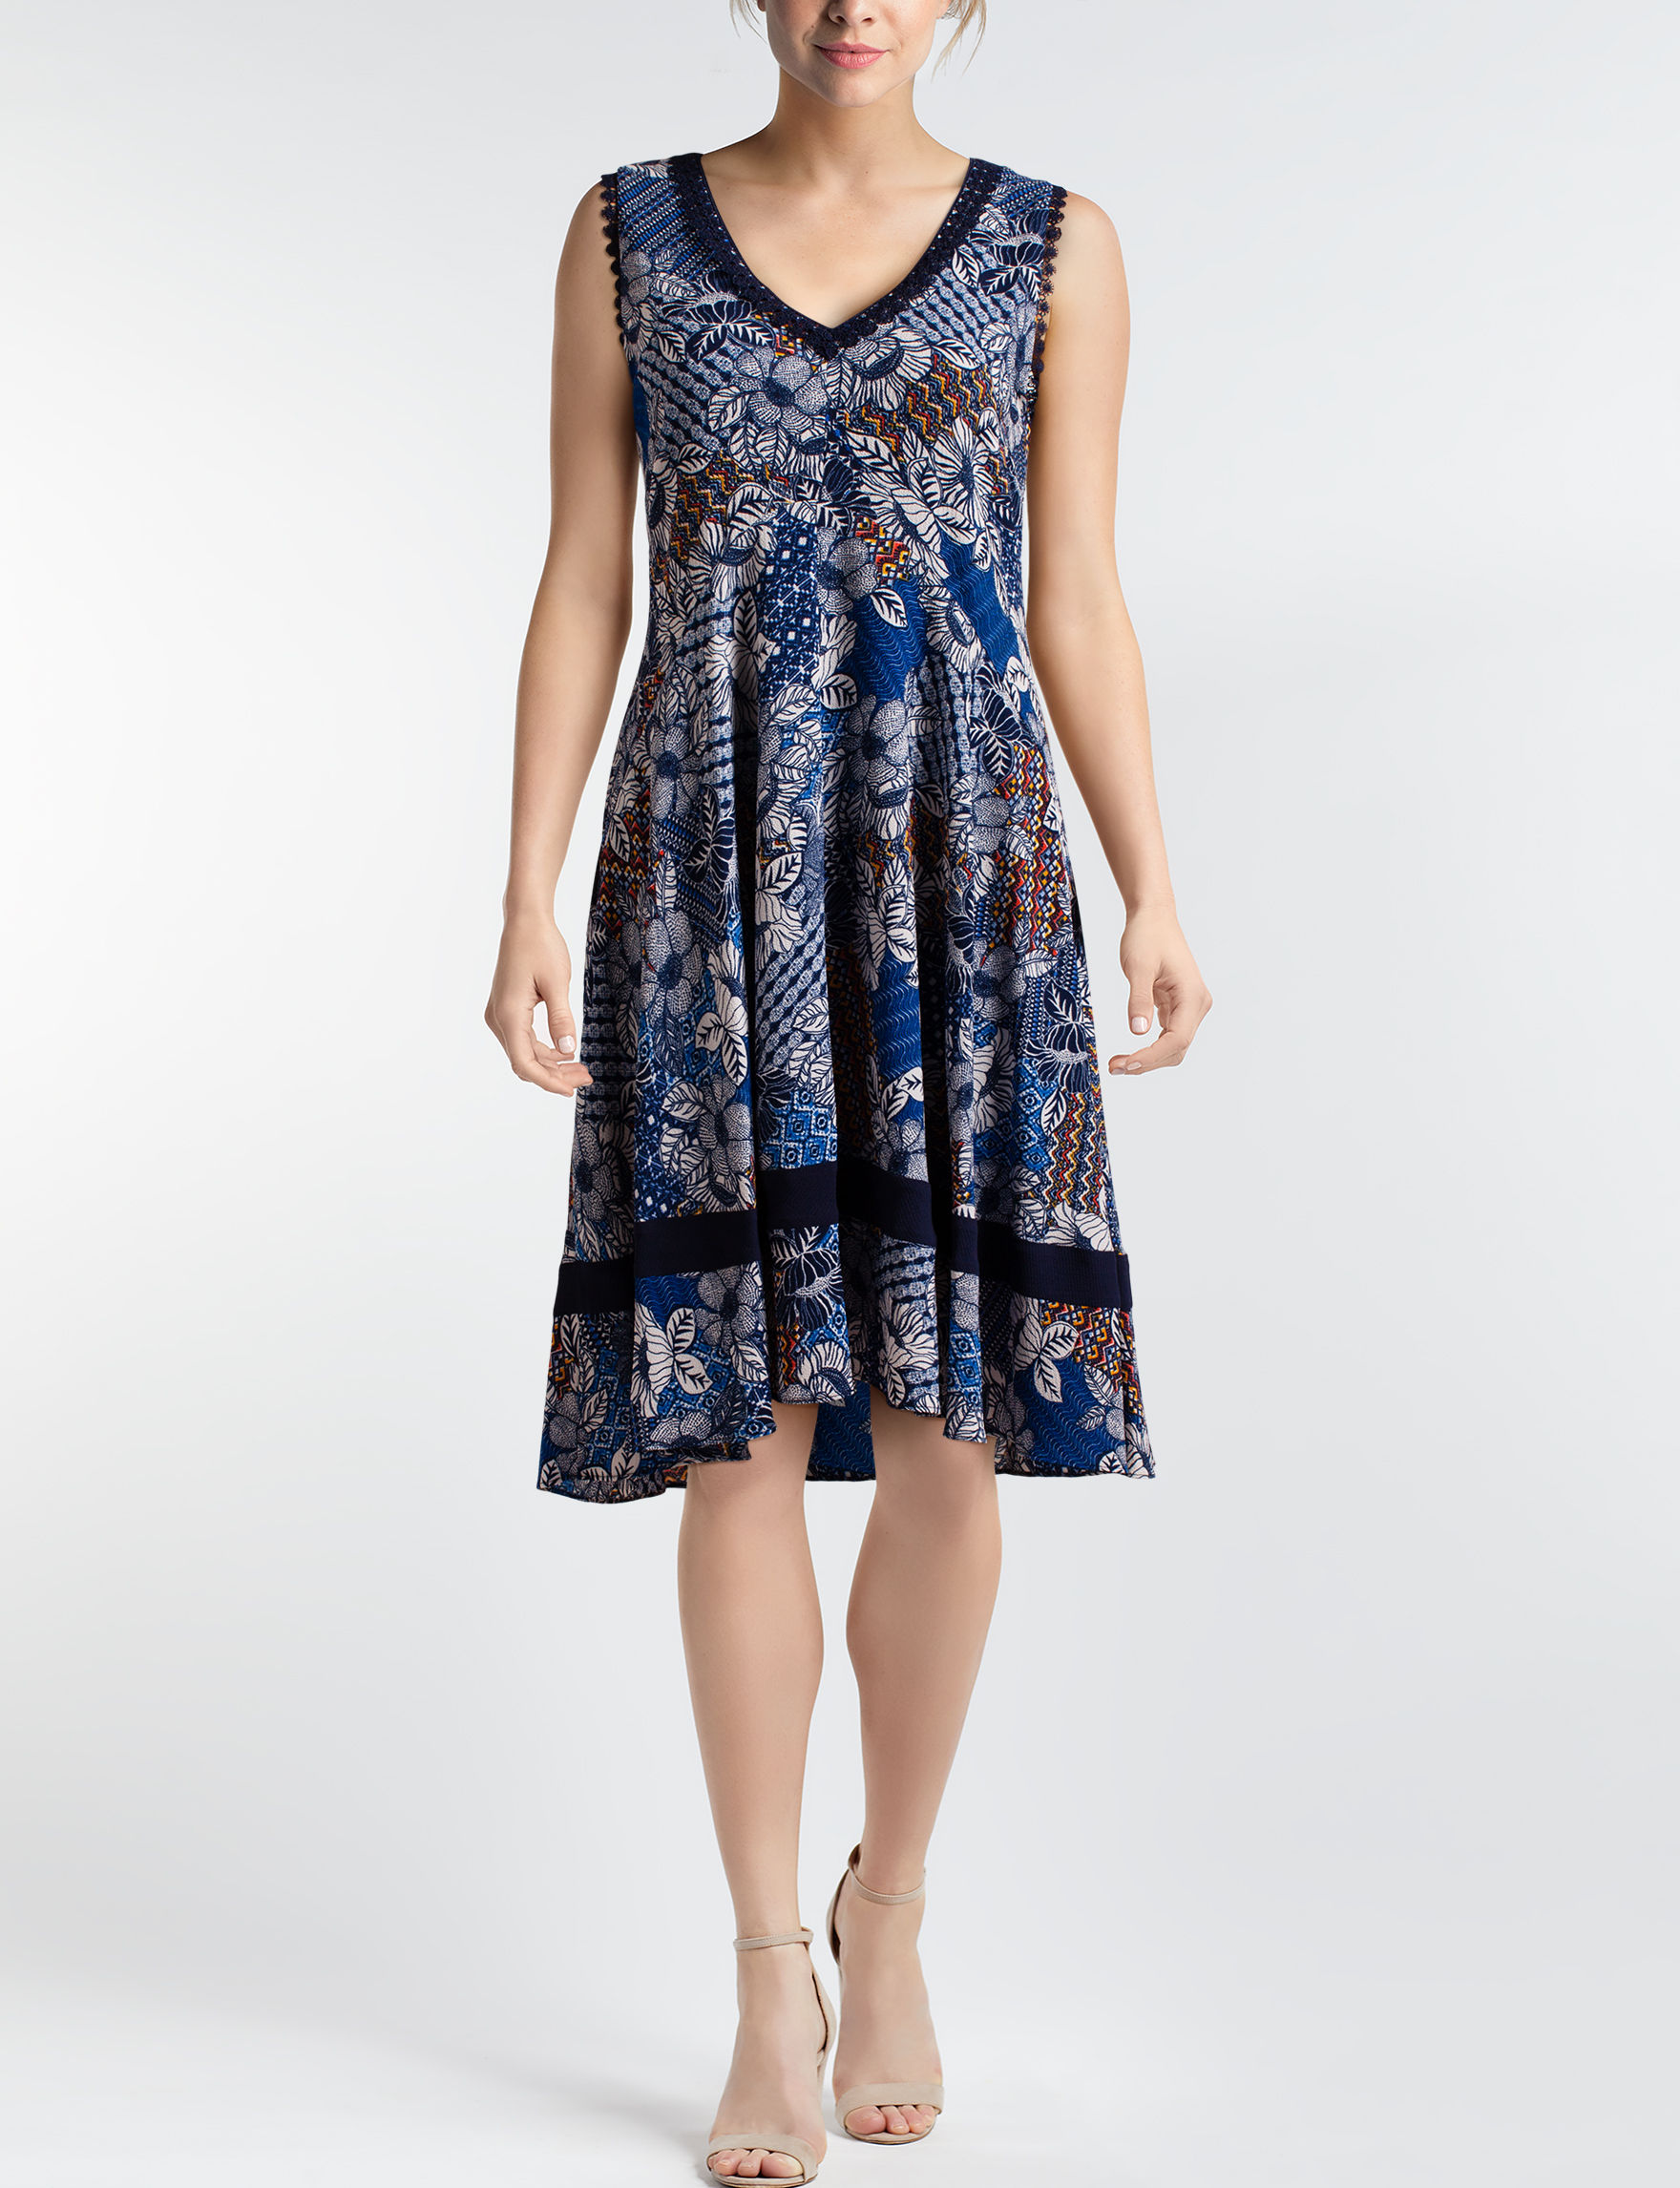 Robbie Bee Navy / Multi Everyday & Casual Fit & Flare Dresses